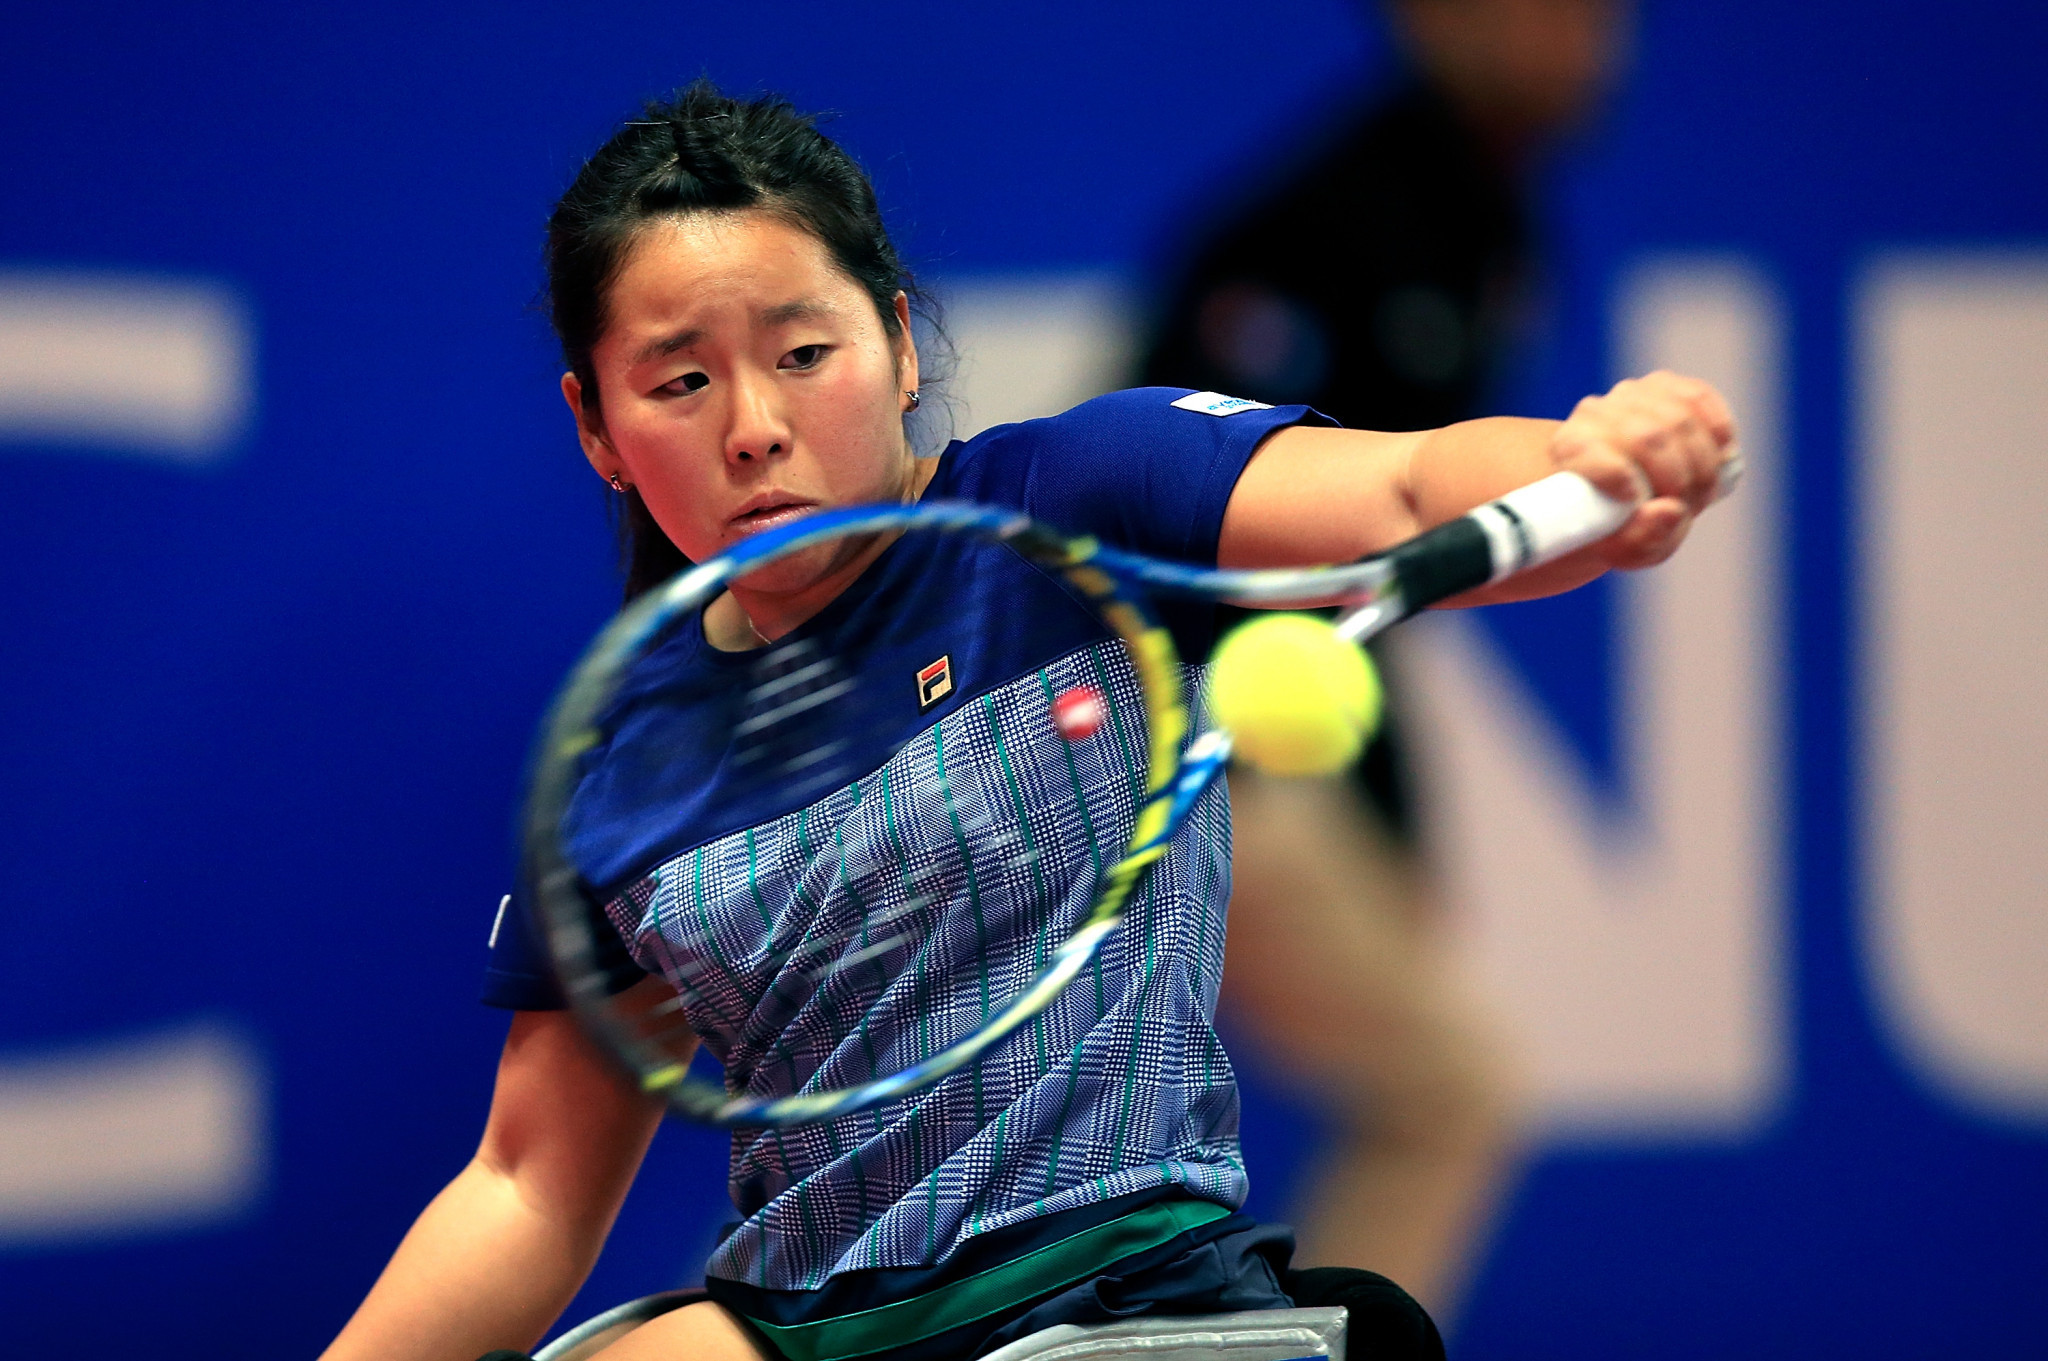 Kamiji impresses on opening day of NEC Wheelchair Tennis Masters